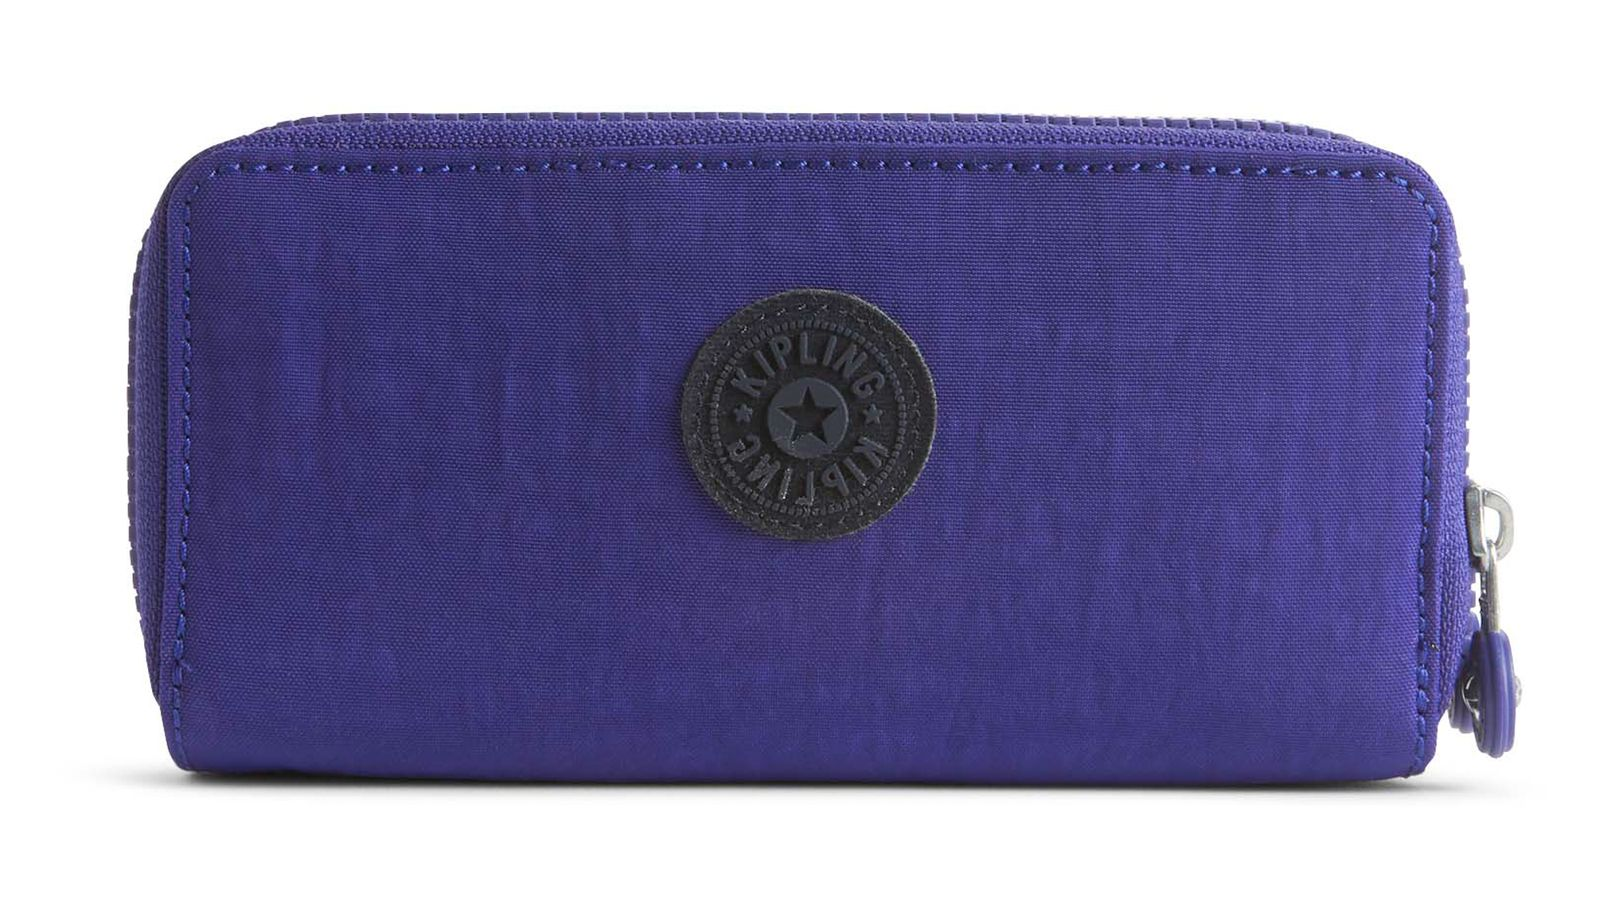 ... Invoice and sofortüberweisung.dekipling Basic Eyes Wide Open Uzario  Large Wallet Summer Purple / 42,19 €*Only possible if you pay by Paypal, ...